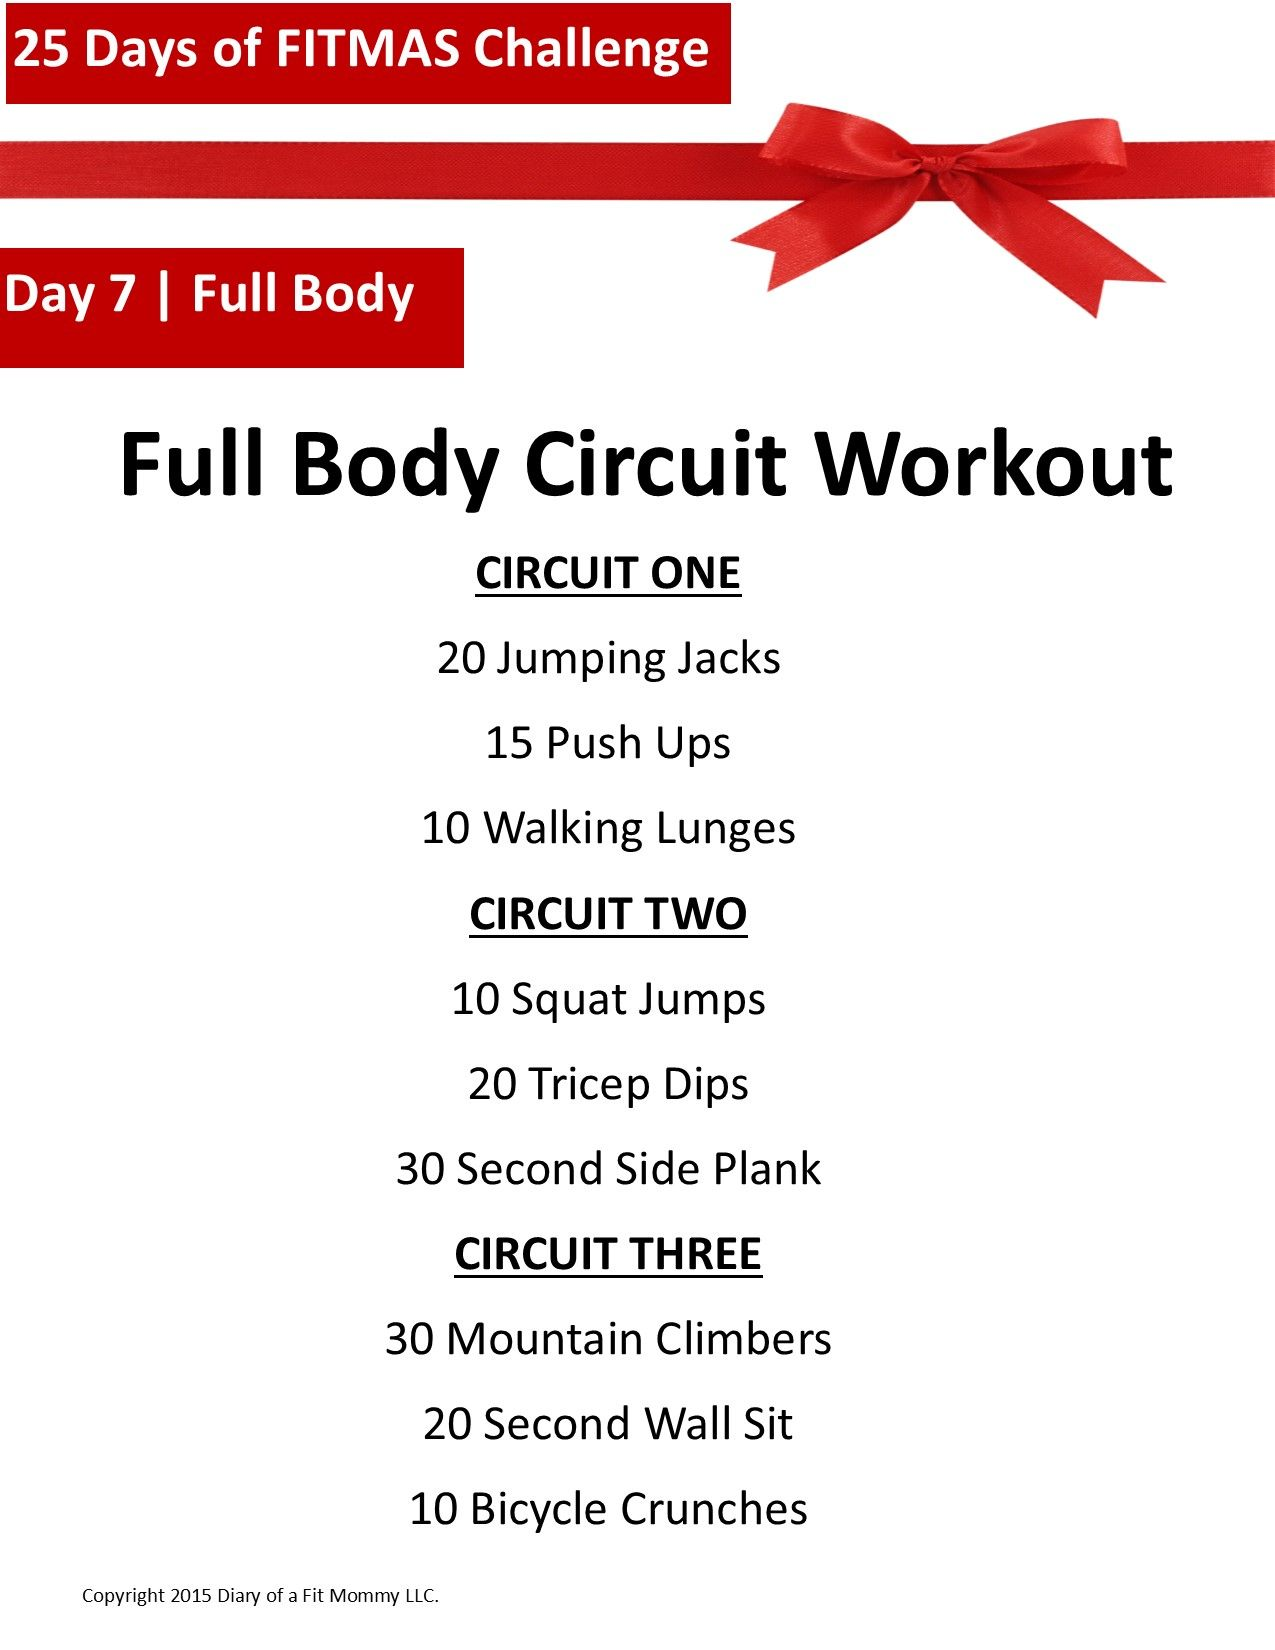 25 Days Of Fitmas Workout Challenge Day 7 Fitness Pinterest The Basic Circuit Training We Did Today Diary A Fit Mommy